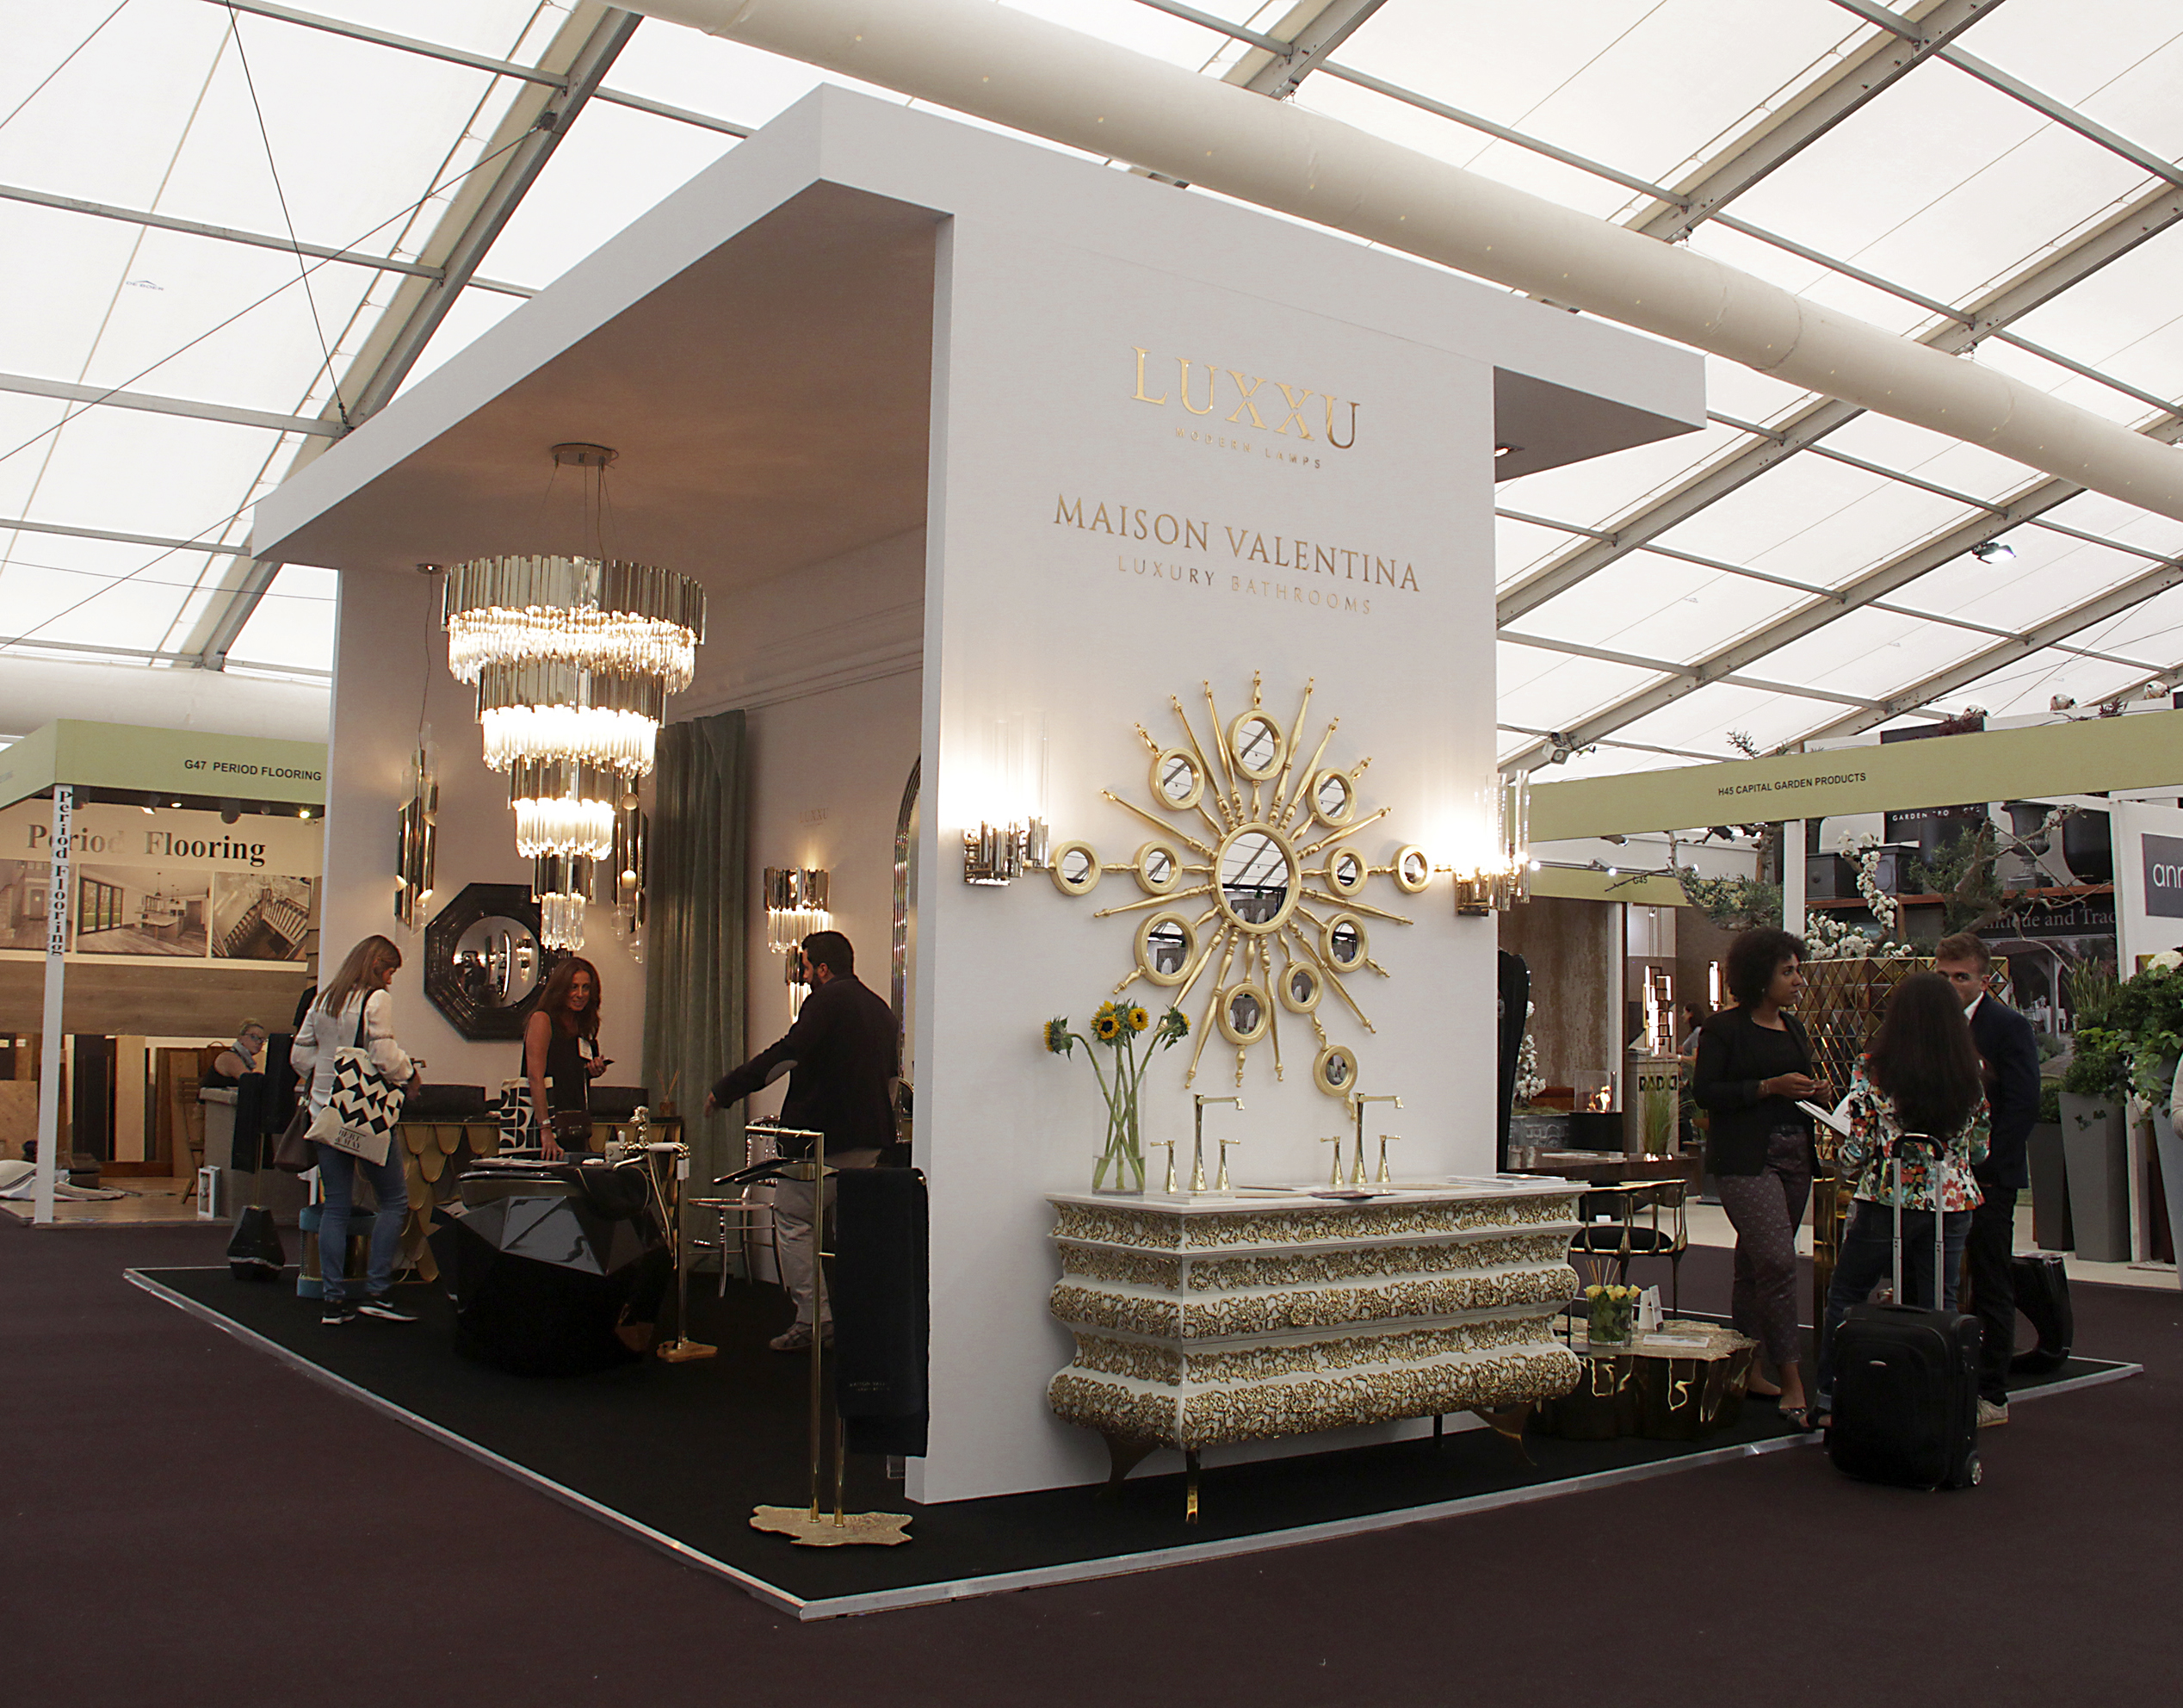 Decorex 2016 in review: the highlights of London's trade show luxury furniture Luxxu's First Luxury Furniture Collection Has 5 New Additions Decorex 2016 highlights feature luxury furniture Luxxu's First Luxury Furniture Collection Has 5 New Additions Decorex 2016 highlights feature